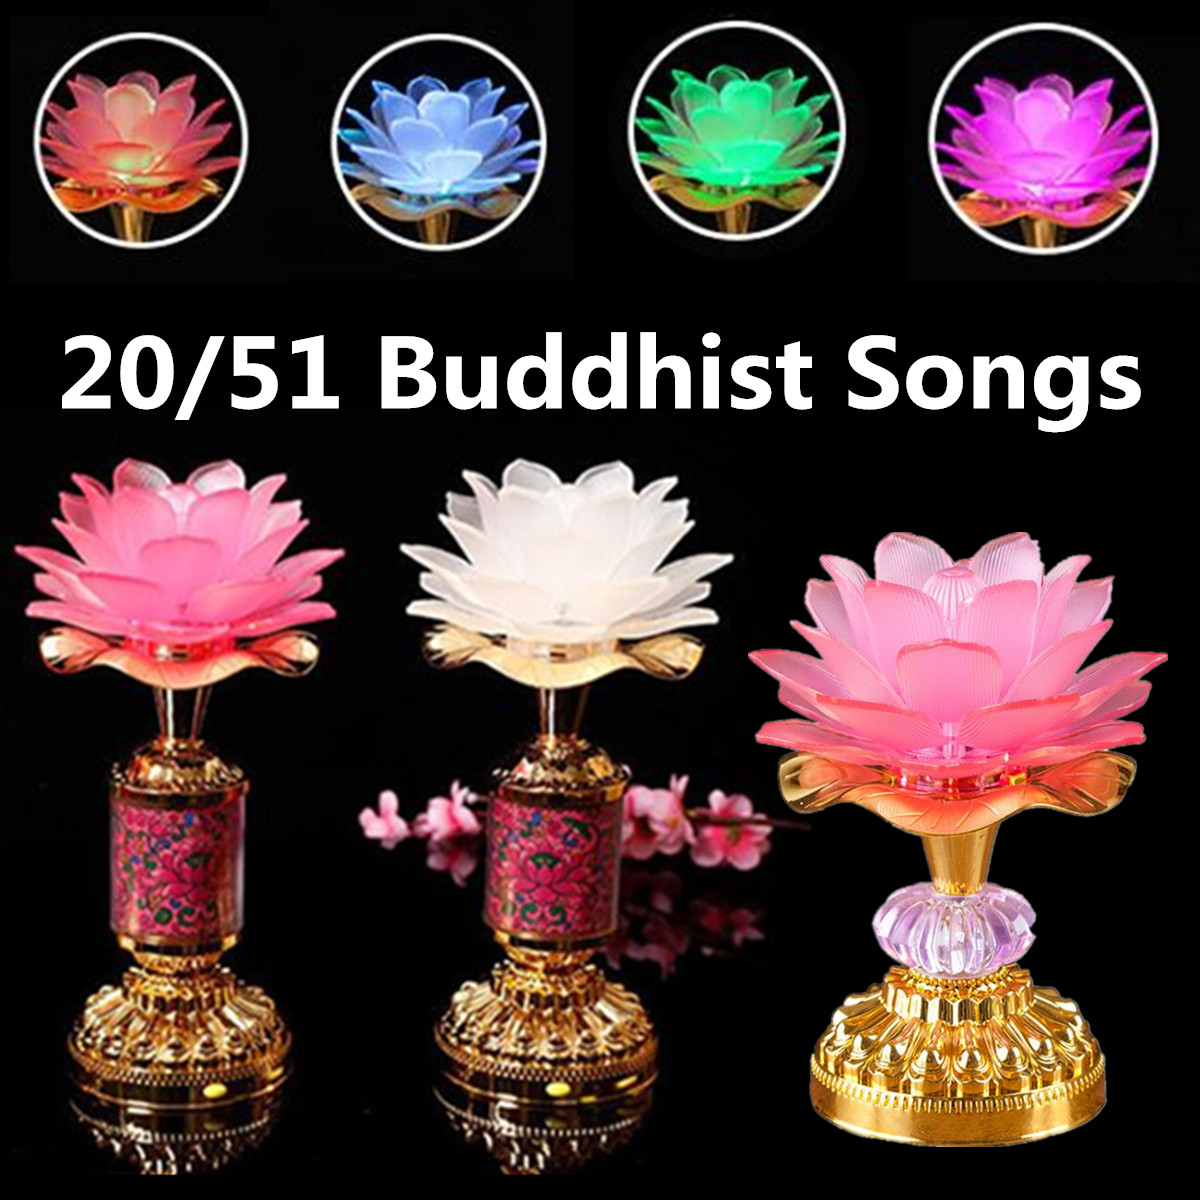 7 Color Flower Buddhist Prayer Lamp Buddha Music Machine LED Color Changing Buddha Temple Light 51 20 Buddhist Songs7 Color Flower Buddhist Prayer Lamp Buddha Music Machine LED Color Changing Buddha Temple Light 51 20 Buddhist Songs